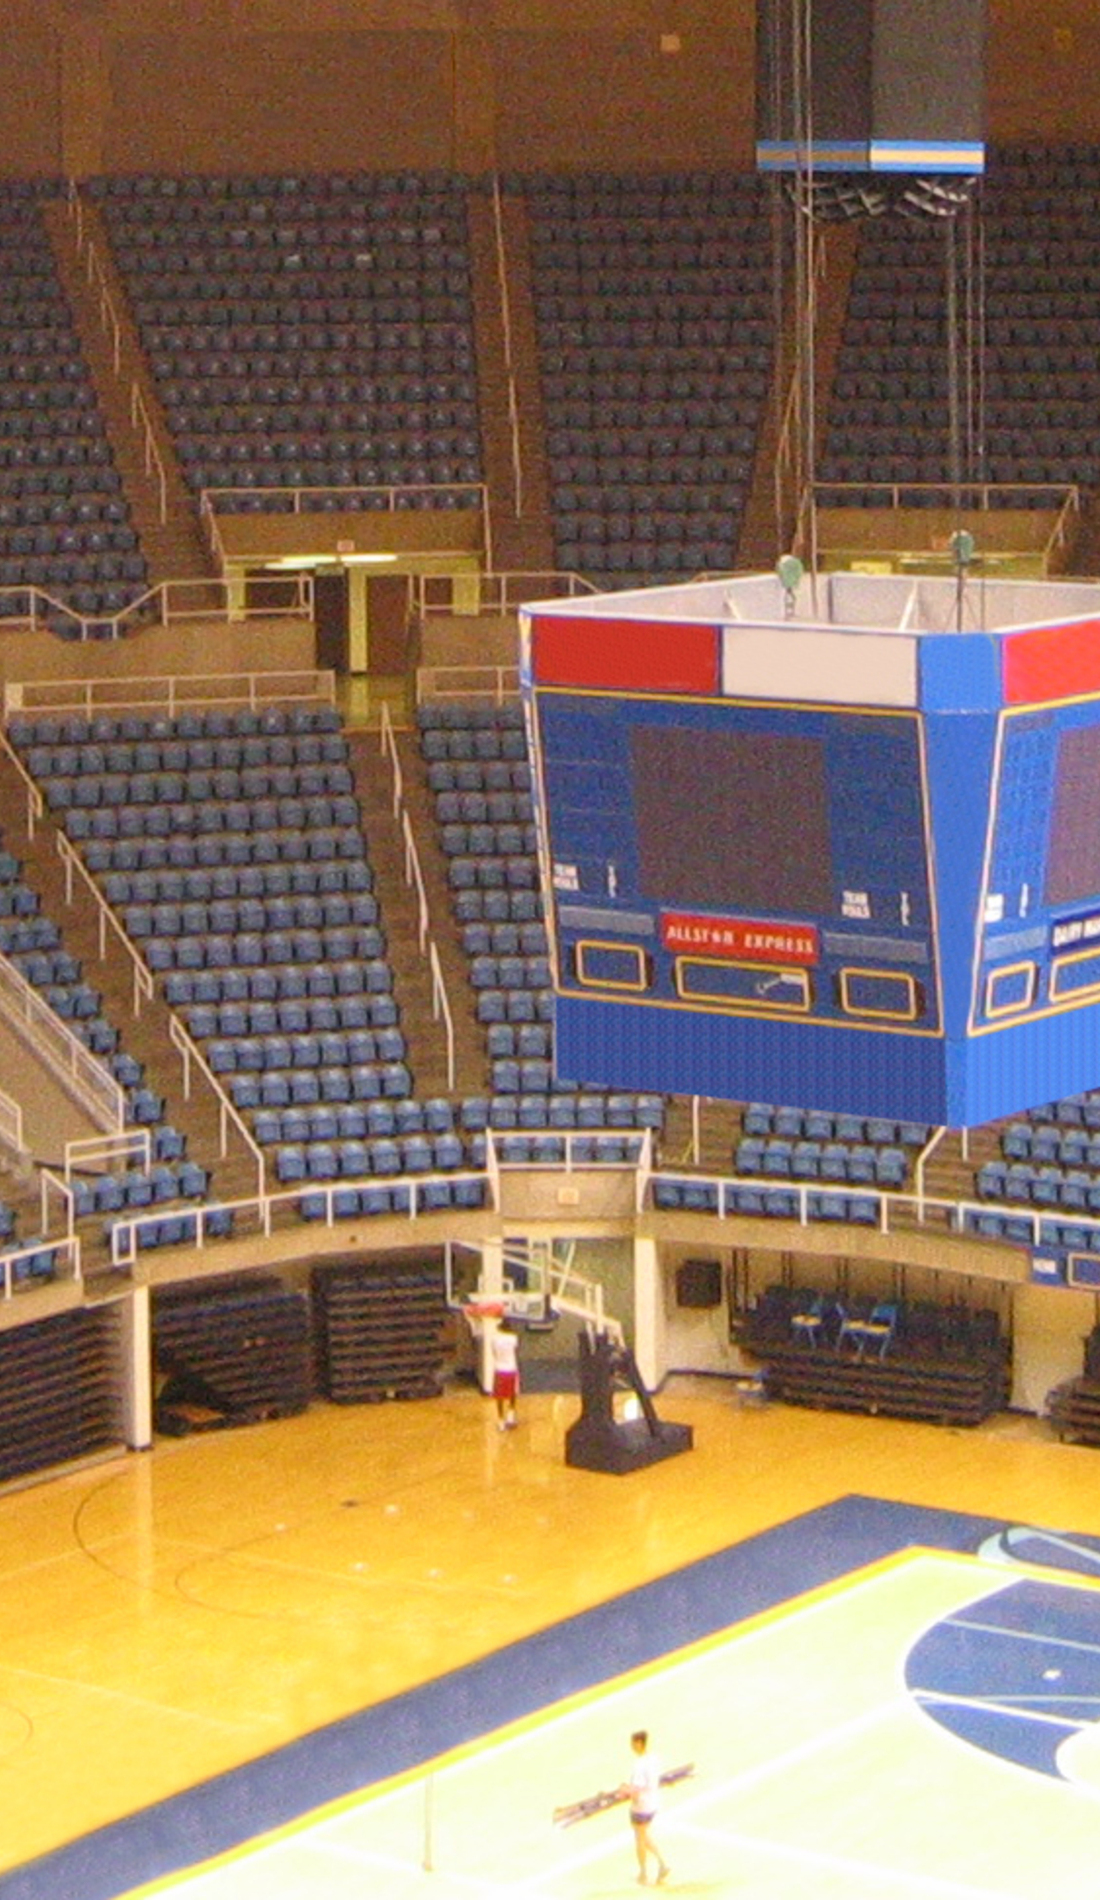 A West Virginia Mountaineers Basketball live event